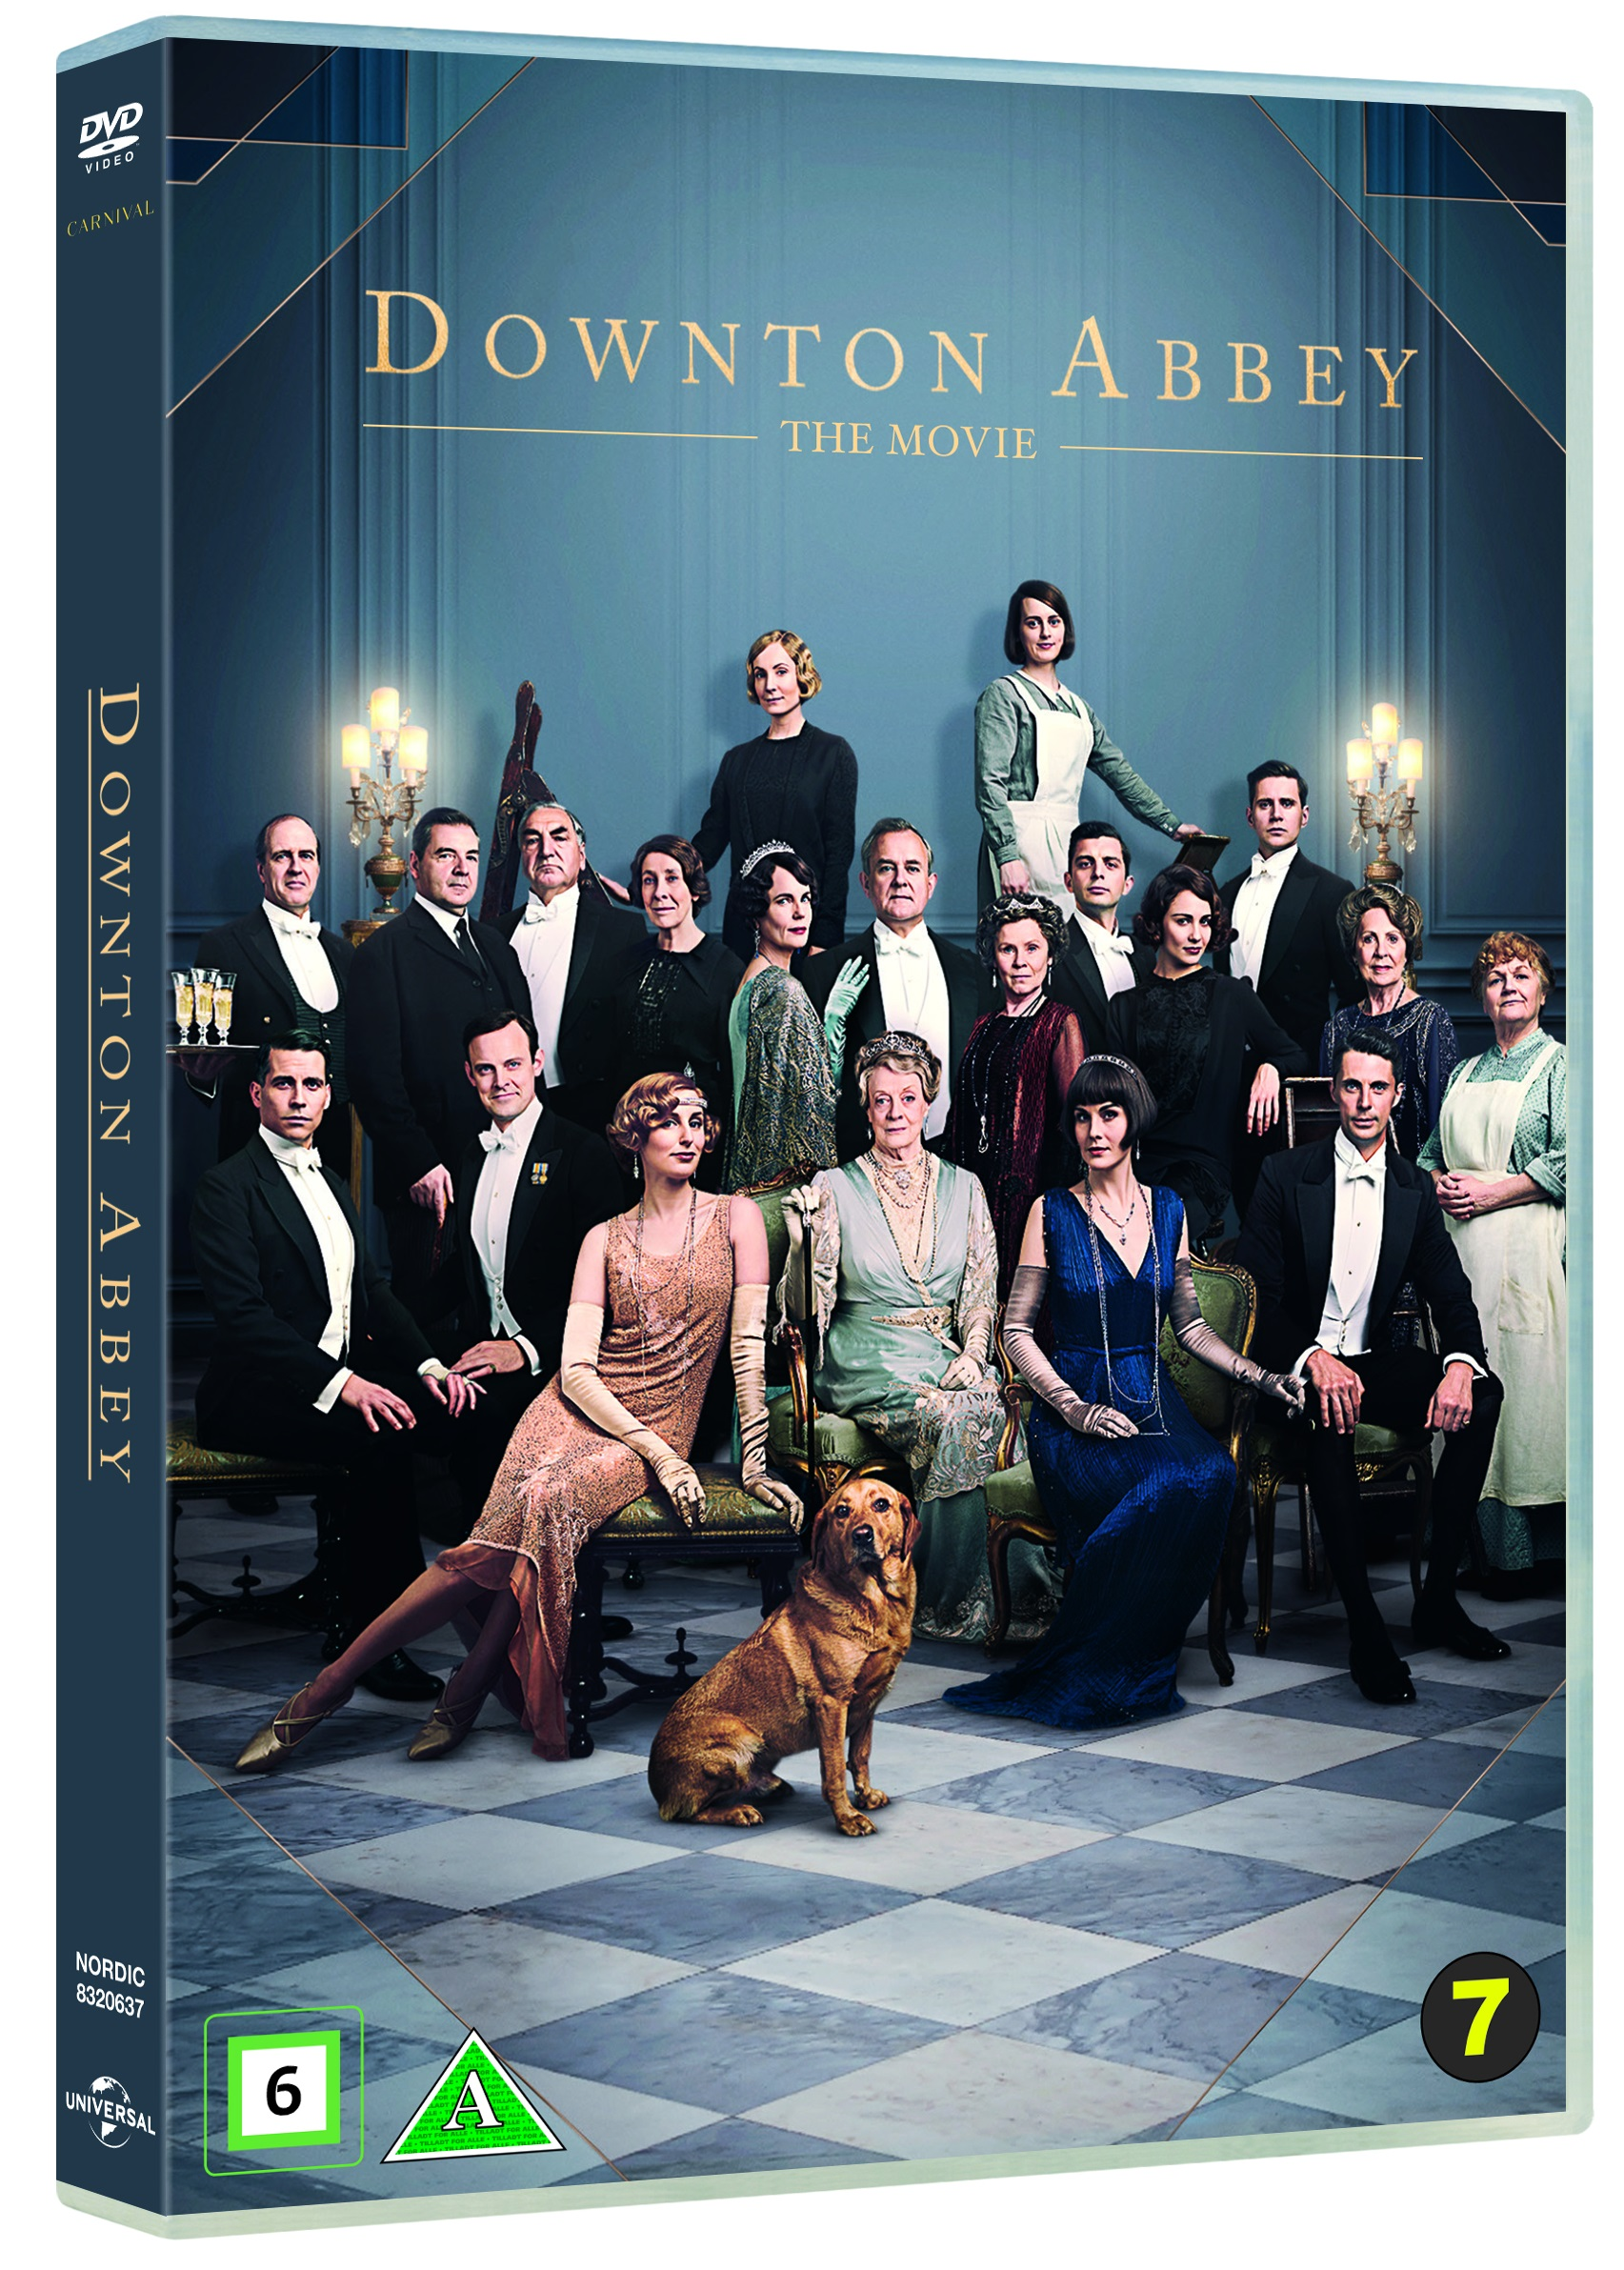 Downton Abbey -  - Film -  - 5053083206376 - 6/2-2020